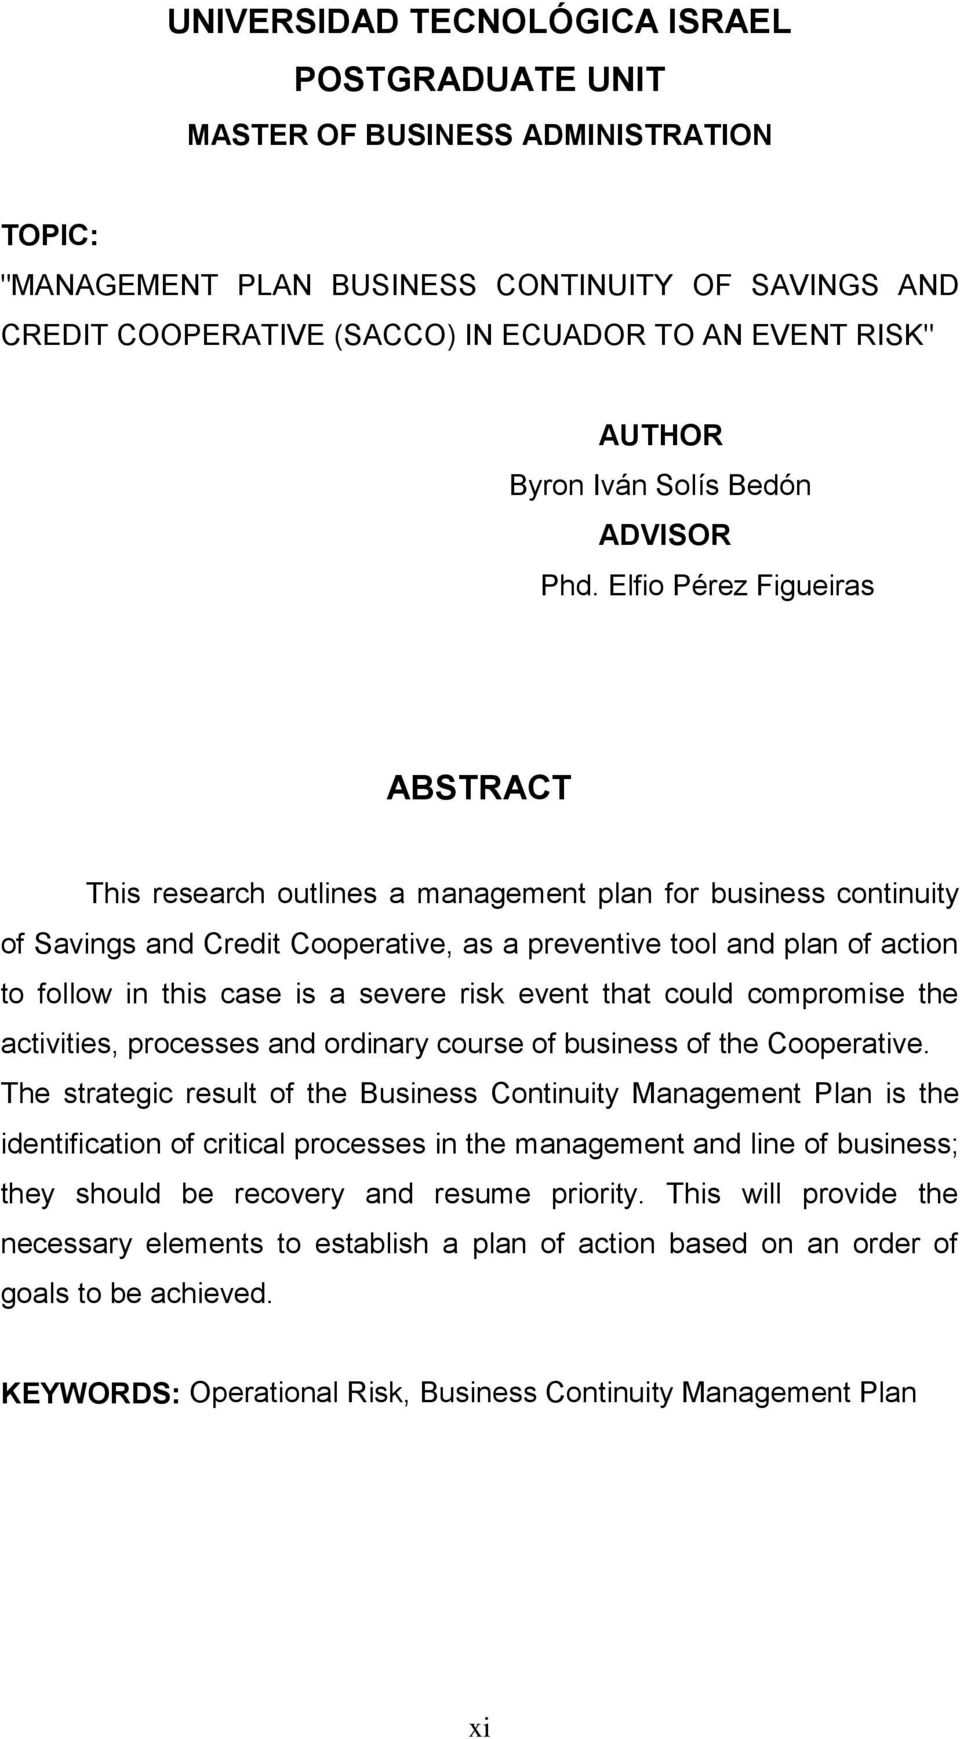 Elfio Pérez Figueiras ABSTRACT This research outlines a management plan for business continuity of Savings and Credit Cooperative, as a preventive tool and plan of action to follow in this case is a